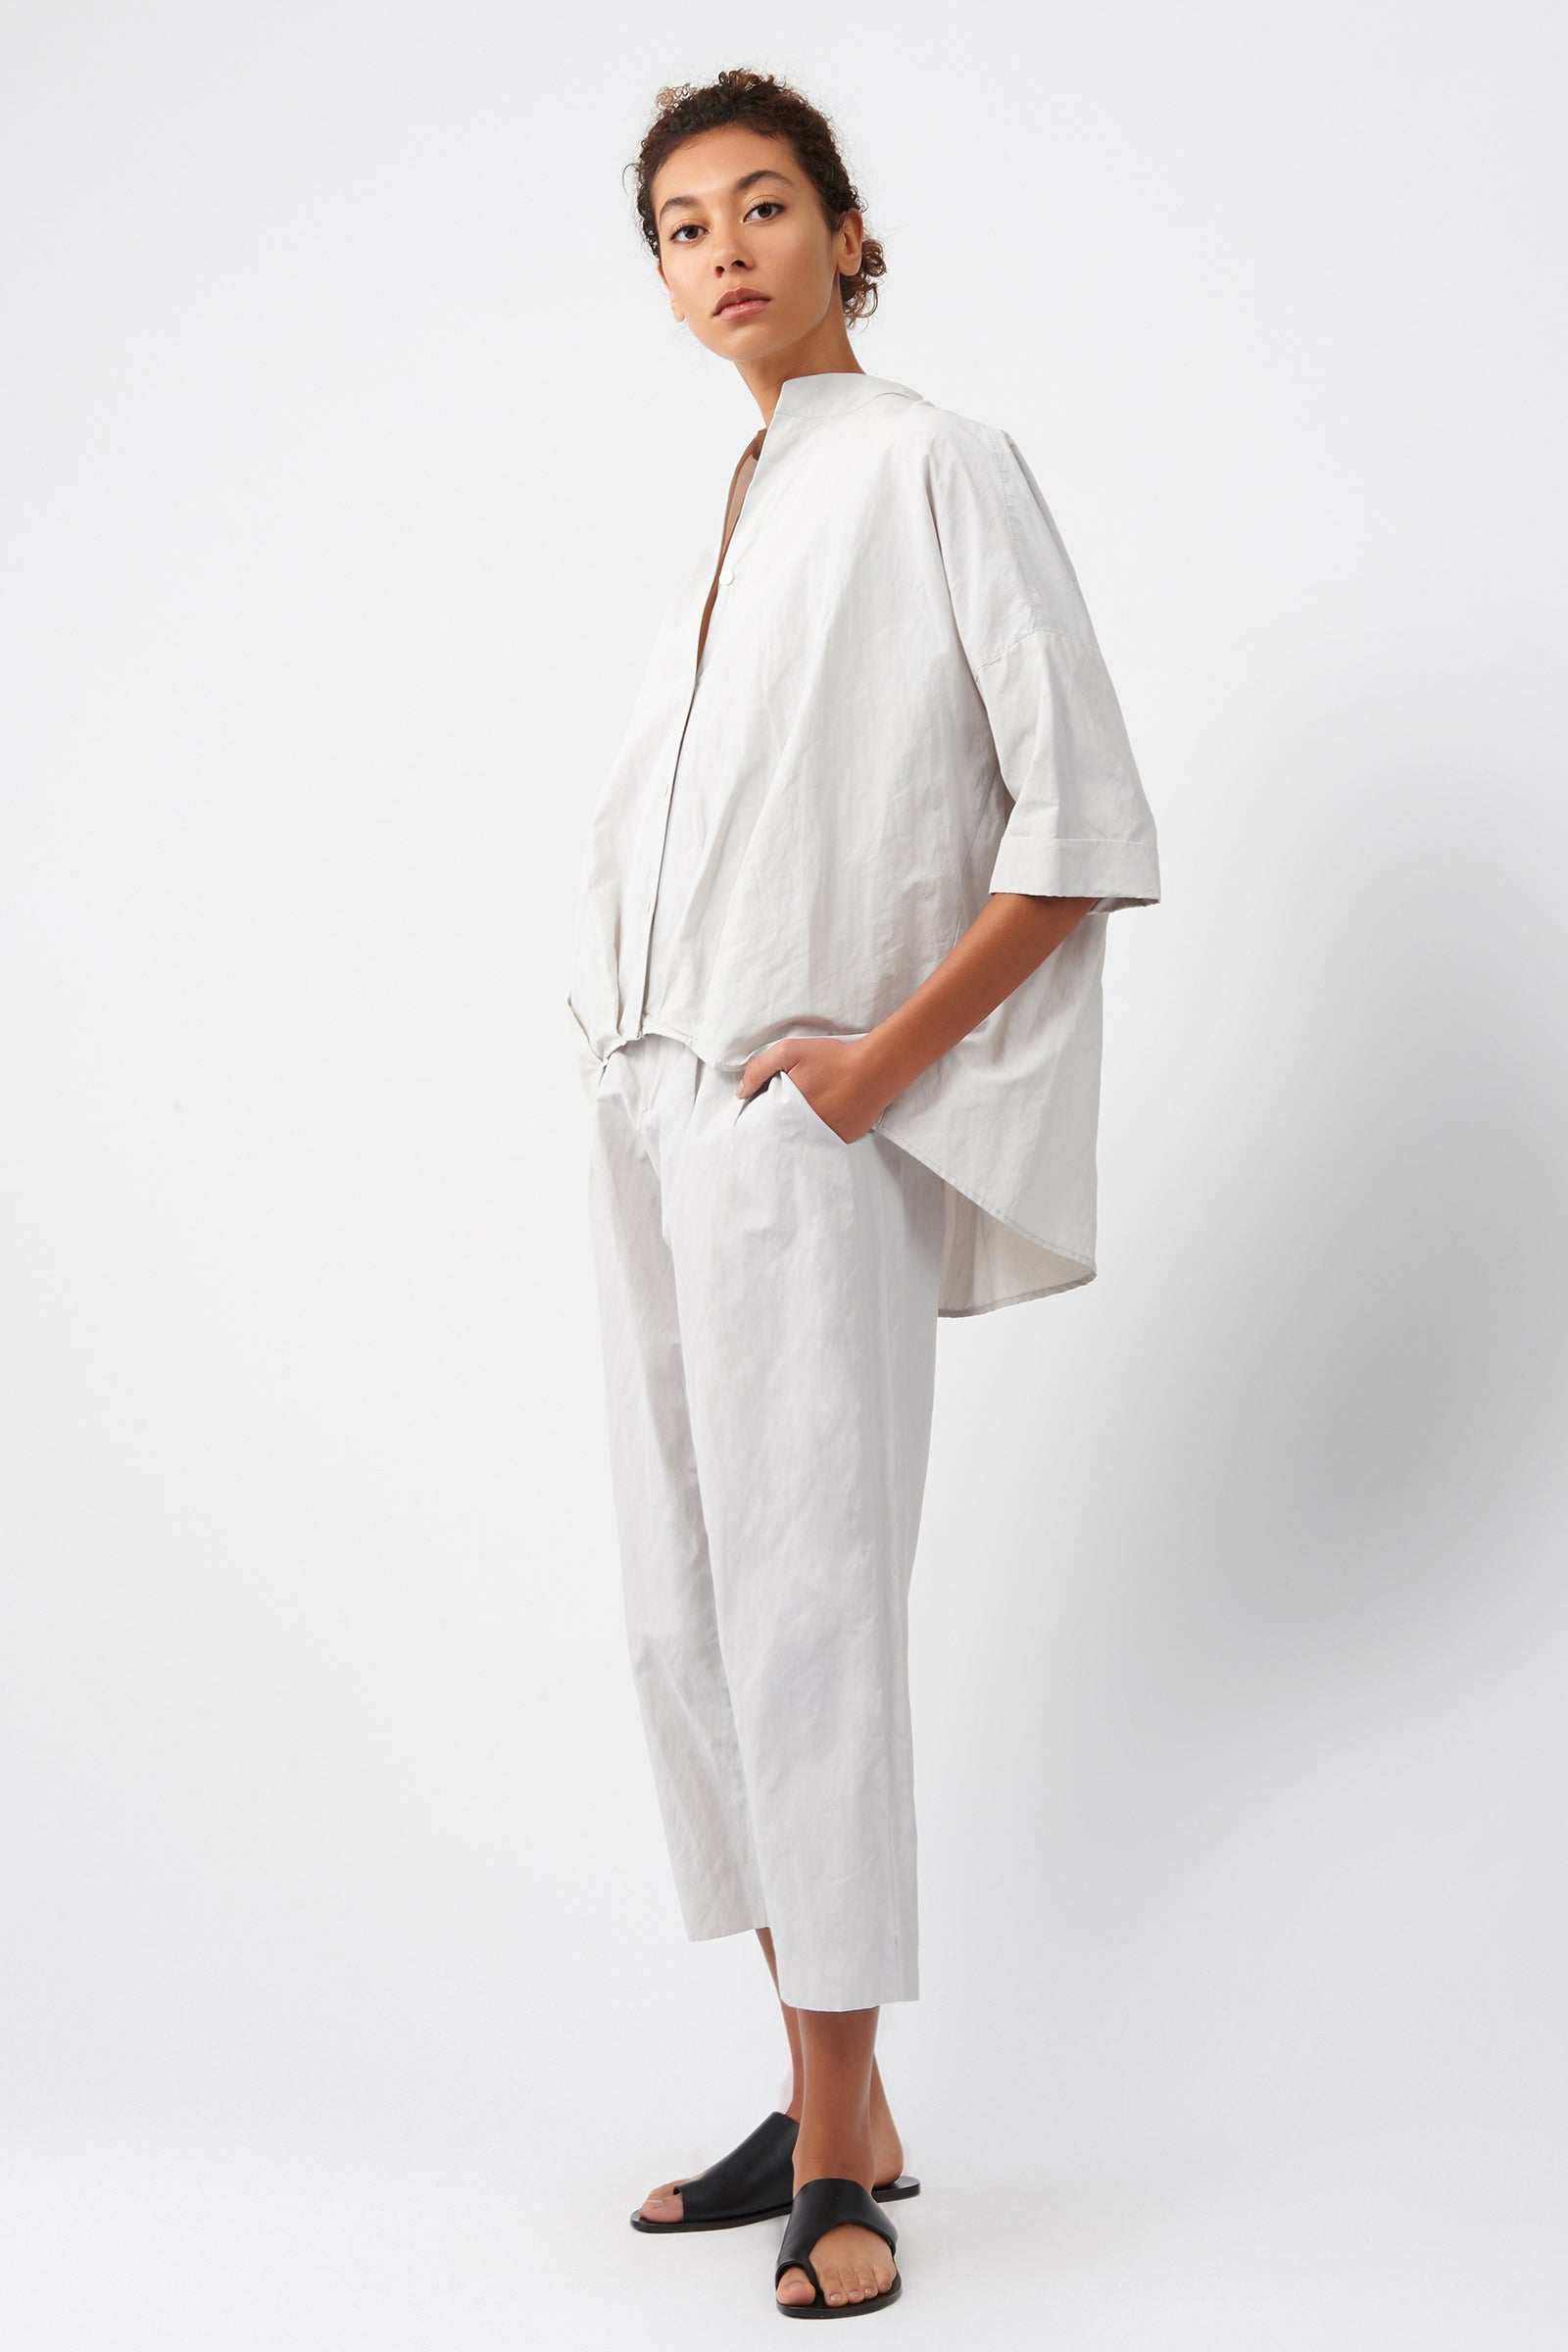 Kal Rieman Pleat Hem Kimono in Stone on Model Full Side View